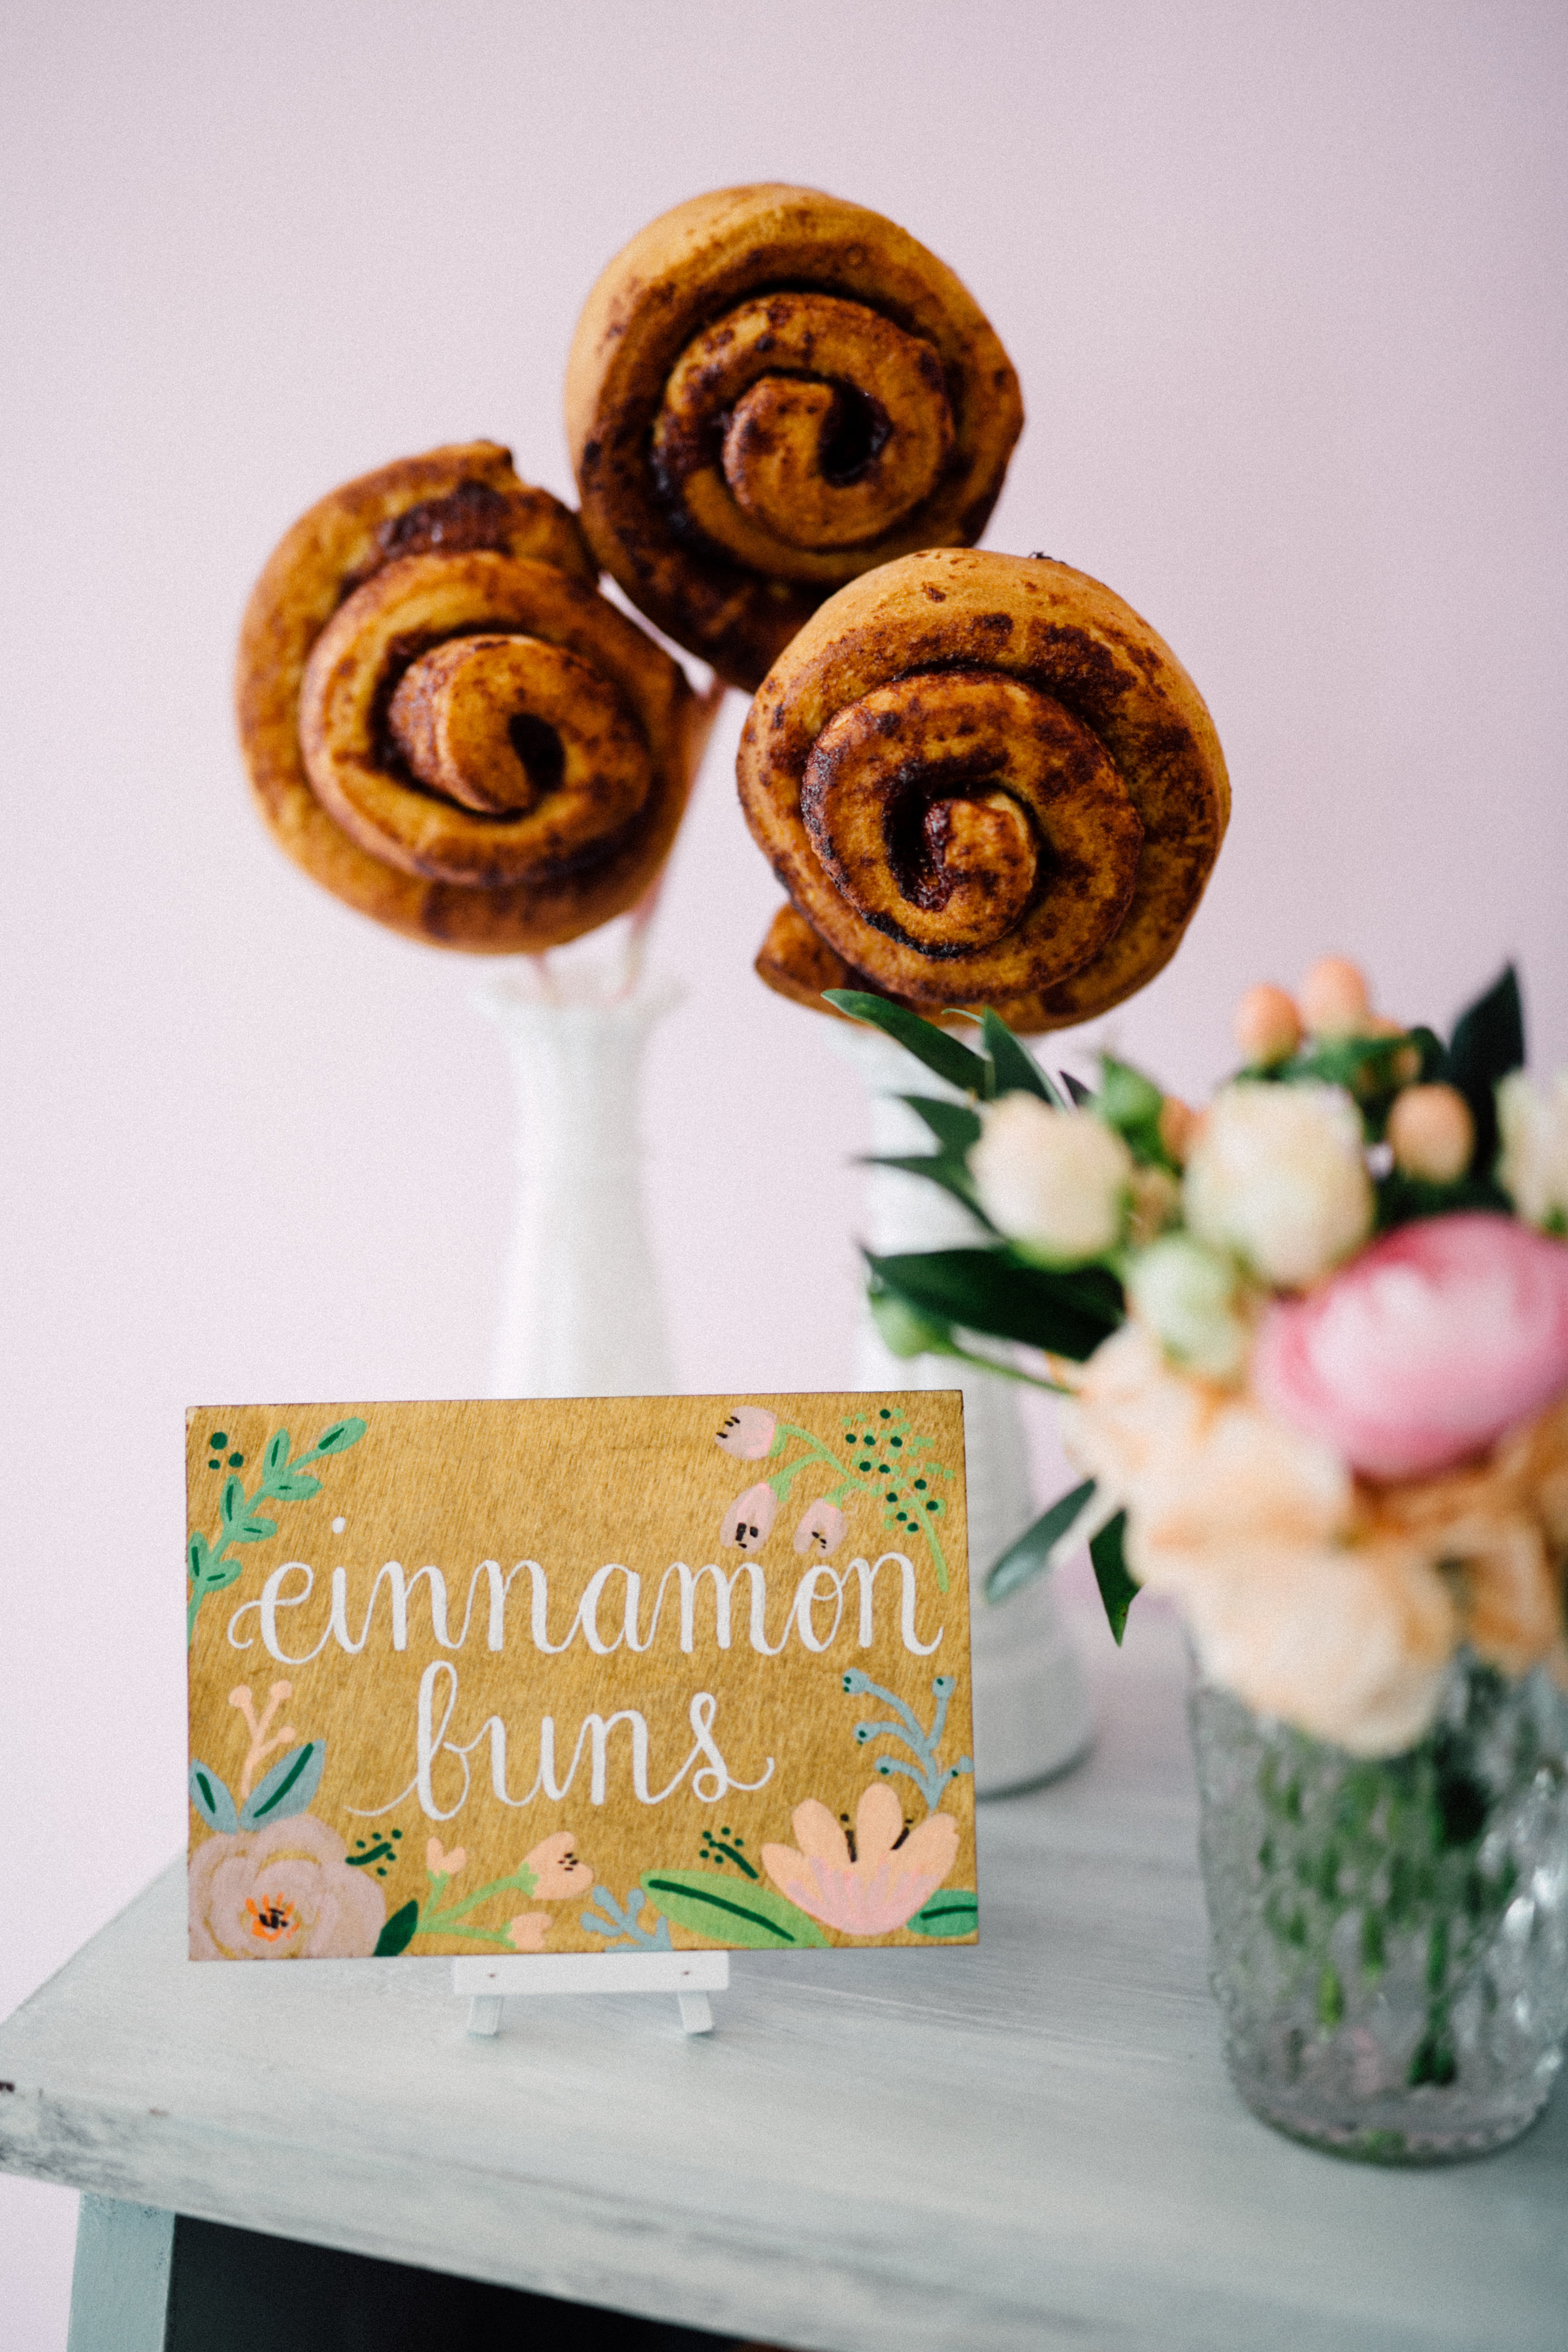 August In Bloom - Cinnamon buns - Bun In The Oven Baby Shower (Style Me Pretty & SMP Living)